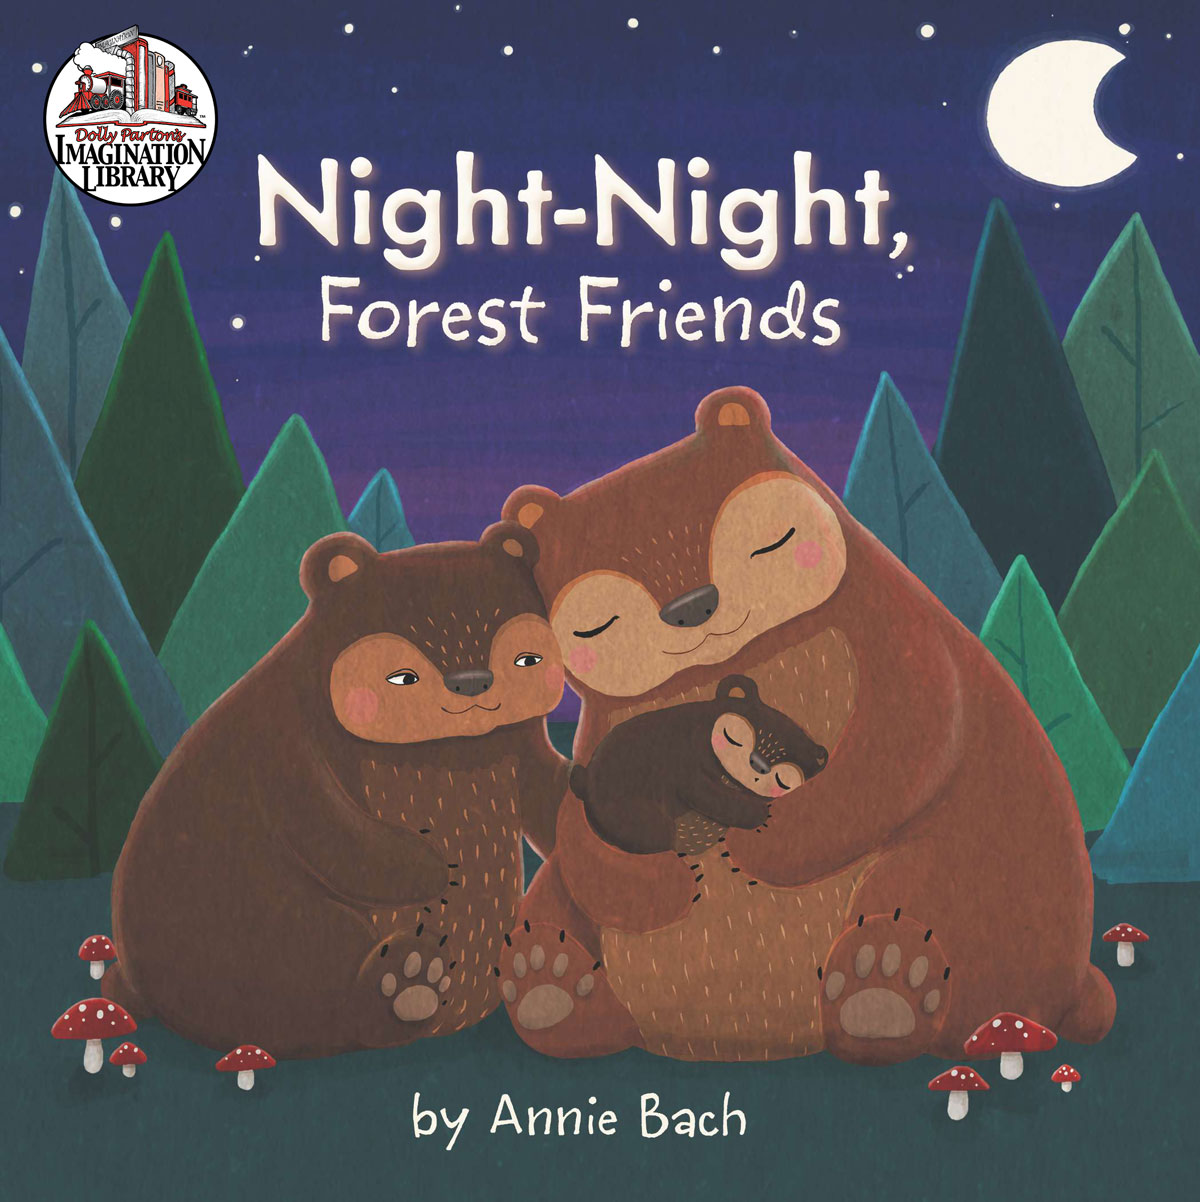 NightNightForestFriends-Logo.jpg